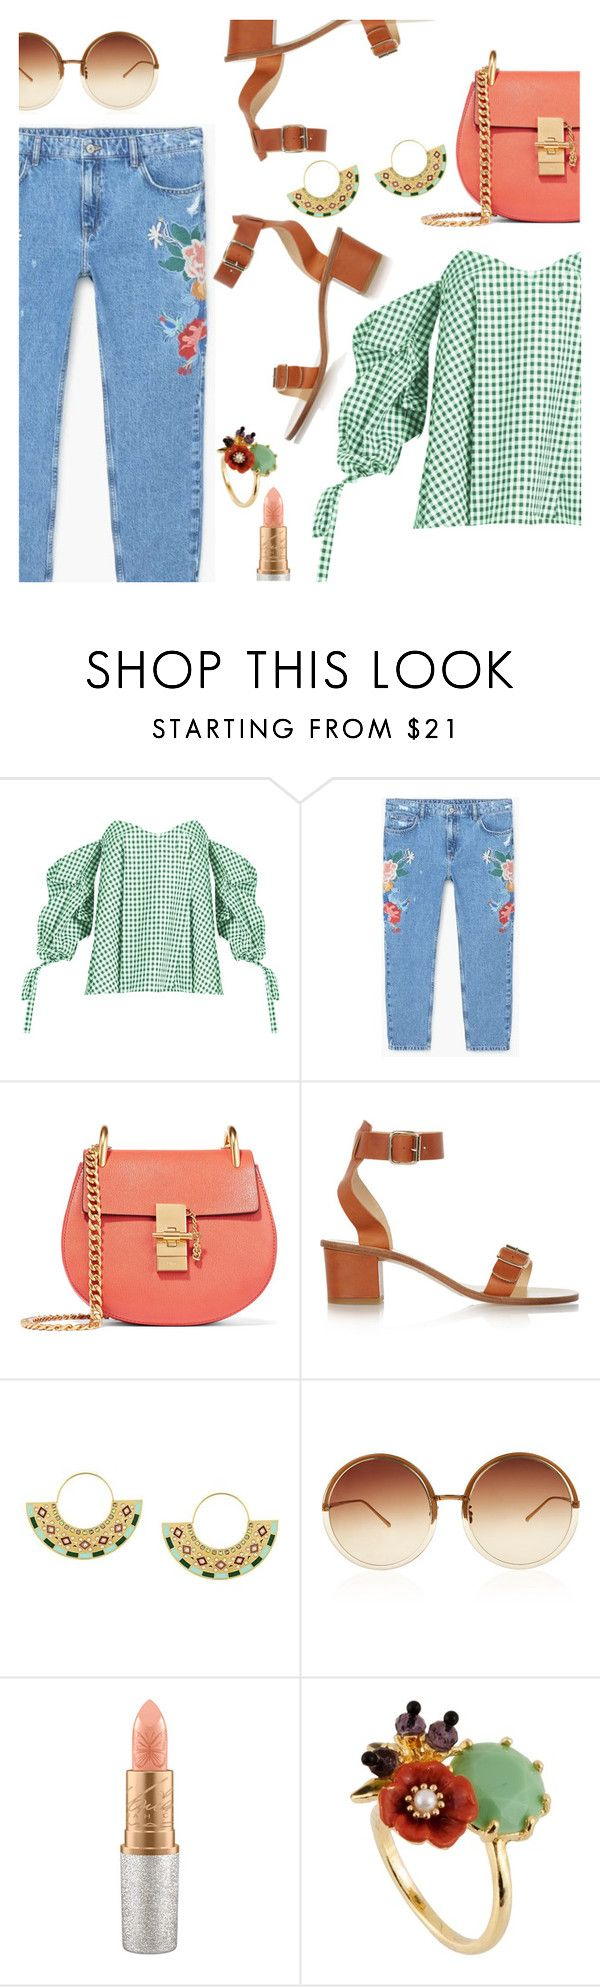 """""""Something I would like to wear :)"""" by dressedbyrose on Polyvore featuring Caroline Constas, MANGO, Chloé, All Tomorrow's Parties, CA&LOU, Linda Farrow, Mariah Carey, Les Néréides, ootd and polyvoreeditorial"""